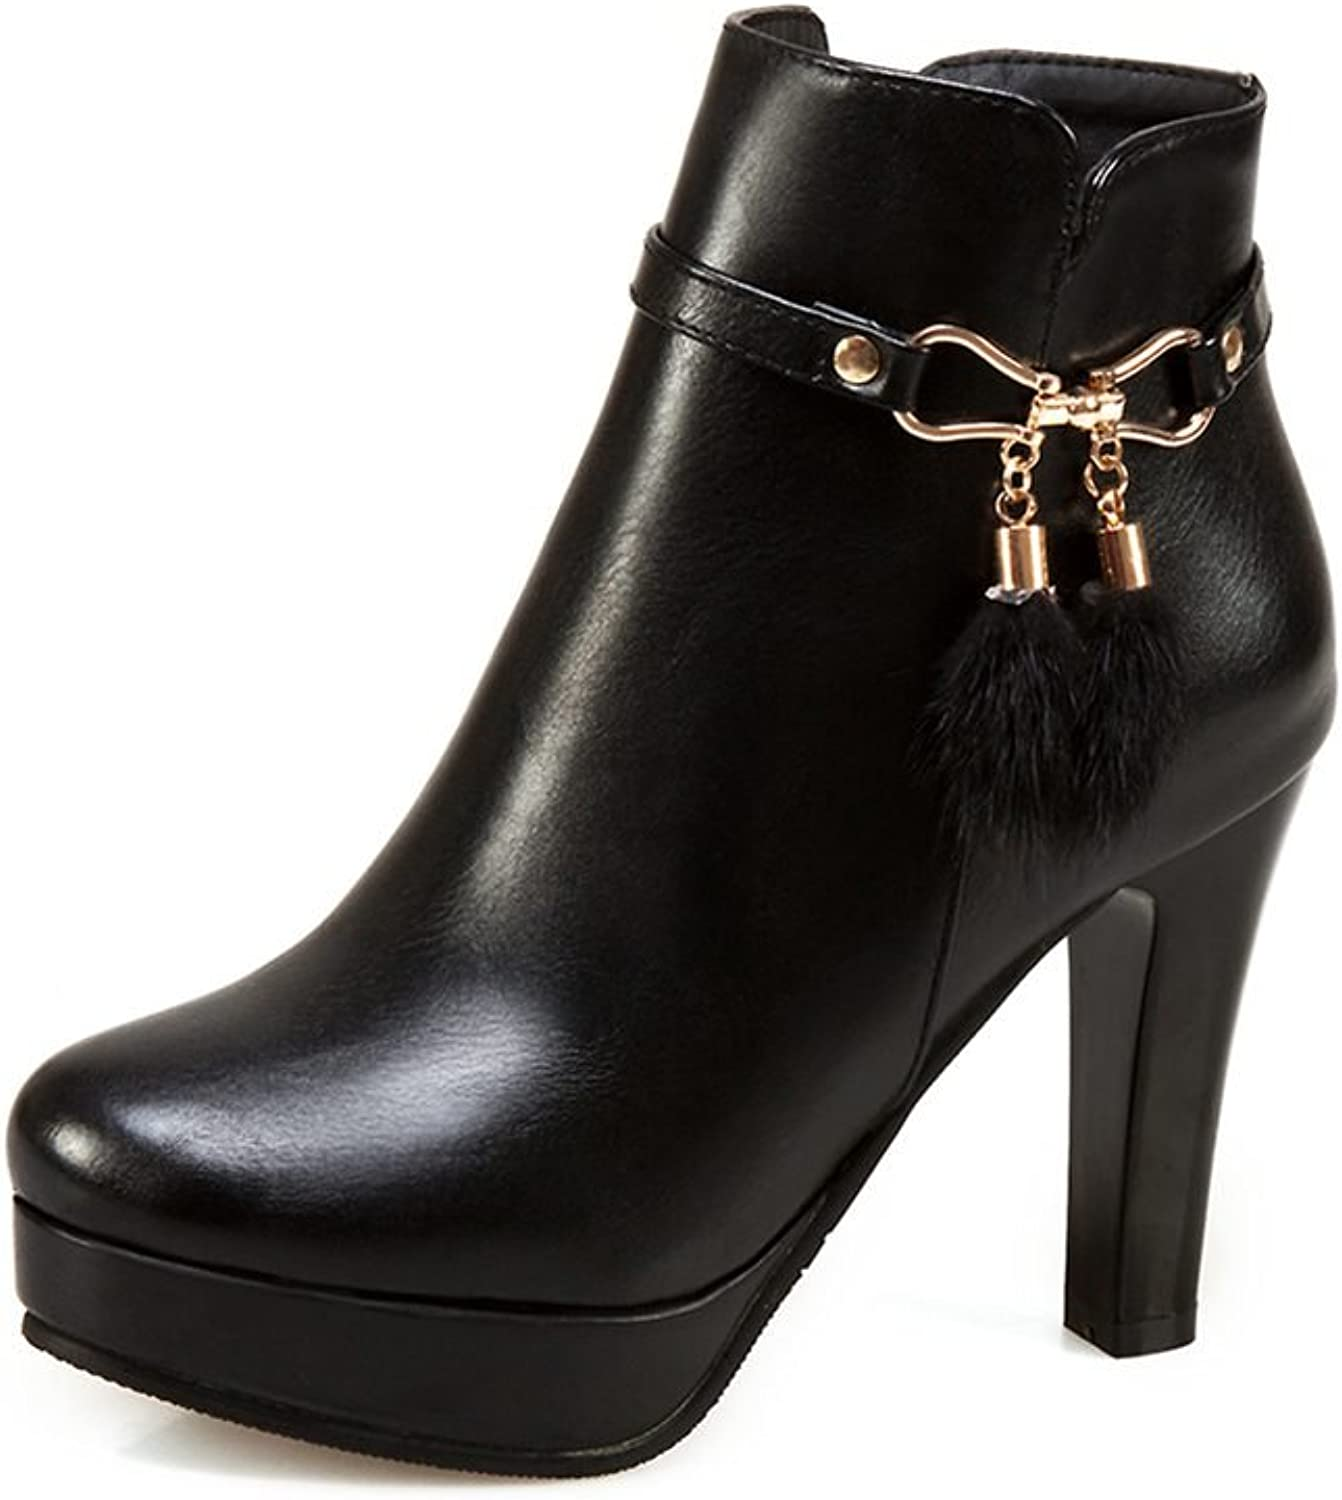 DecoStain Women's Fringe Thick High Heel Ankle High Boots